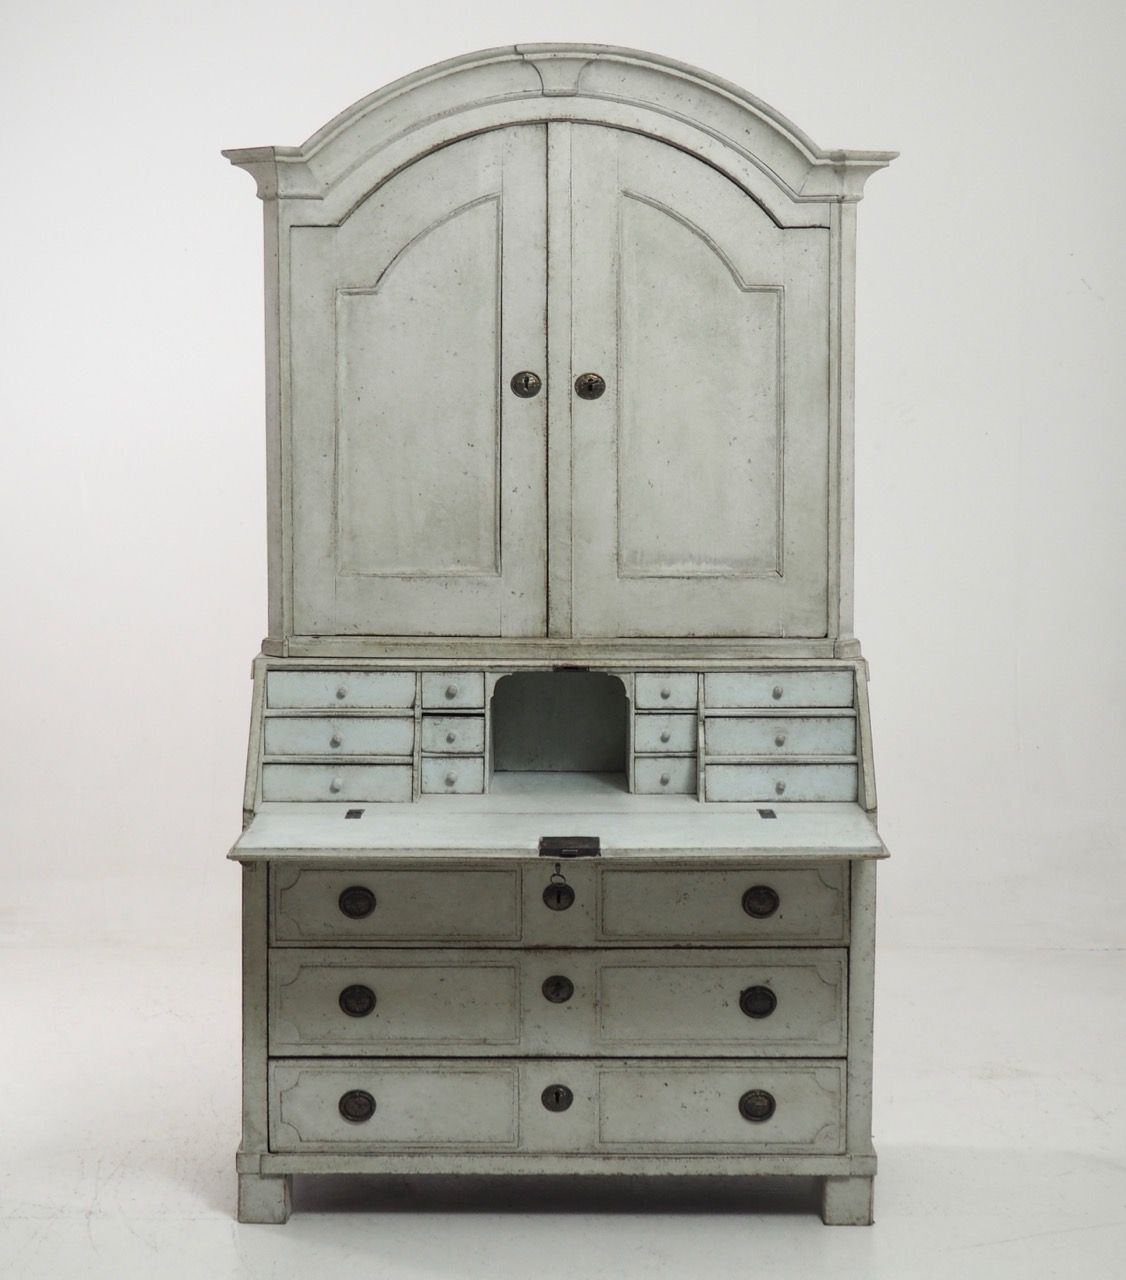 Antique two-part Bureau with Original Locks and Keys circa 1750. - Meet The Designer: Abigail Wright Of Vivere Design Bureaus